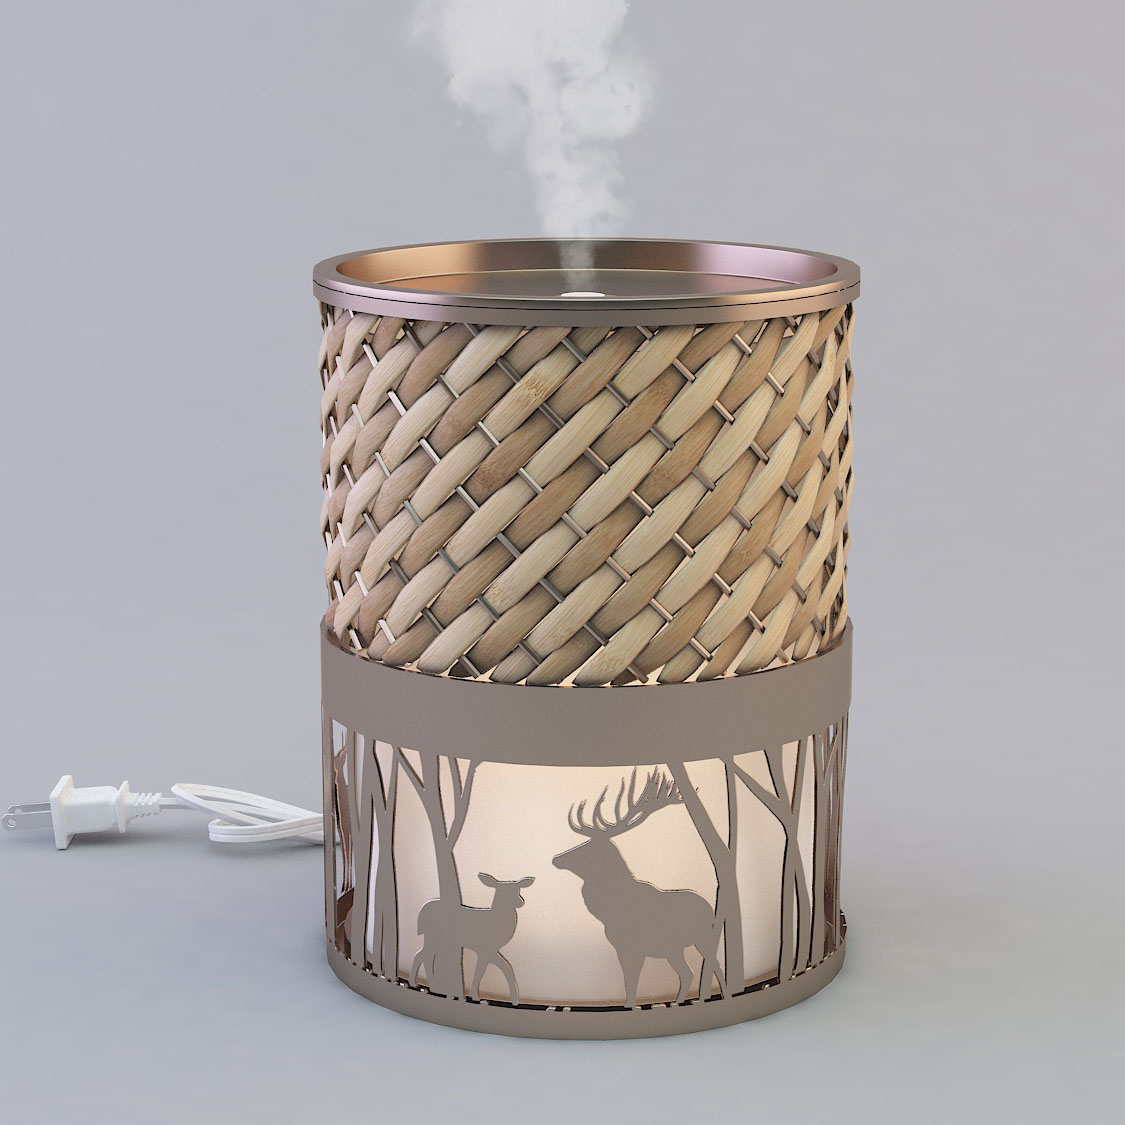 Metal aromatherapy ultrasonic diffuser with rattan GLEA2120M-Z